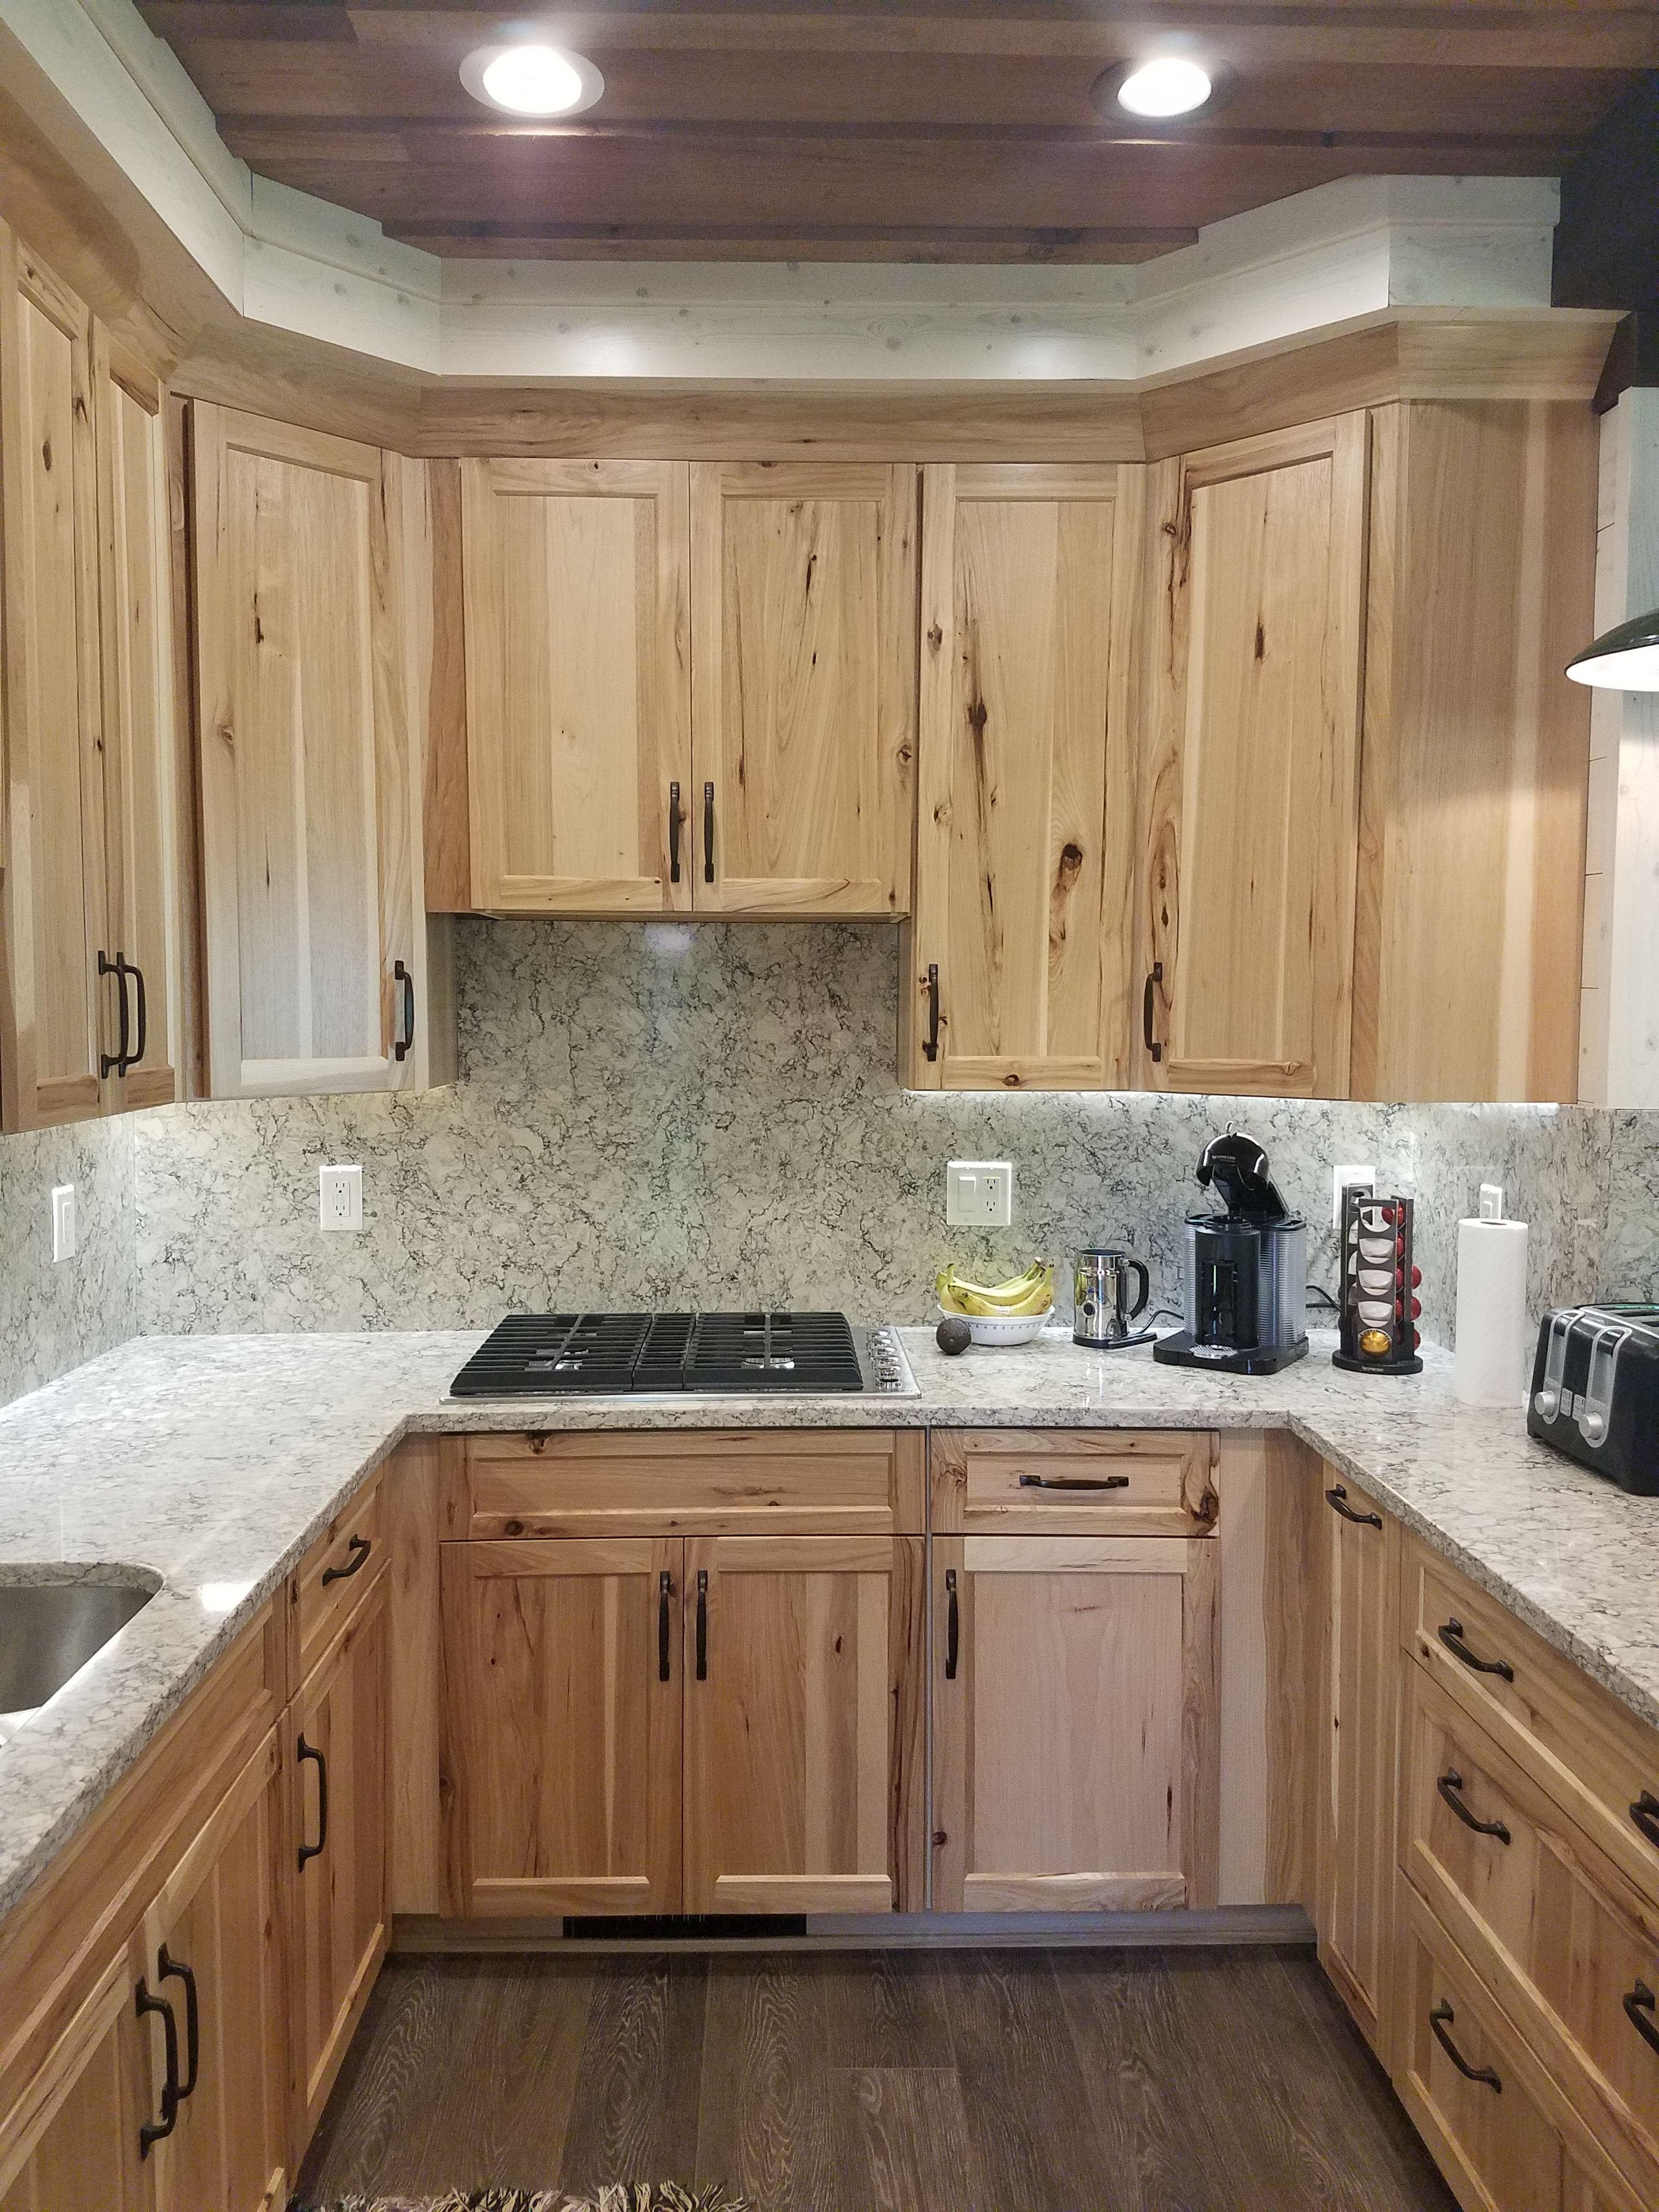 hickory shaker style kitchen cabinets build your own outdoor fresh pictures of with quartz countertops